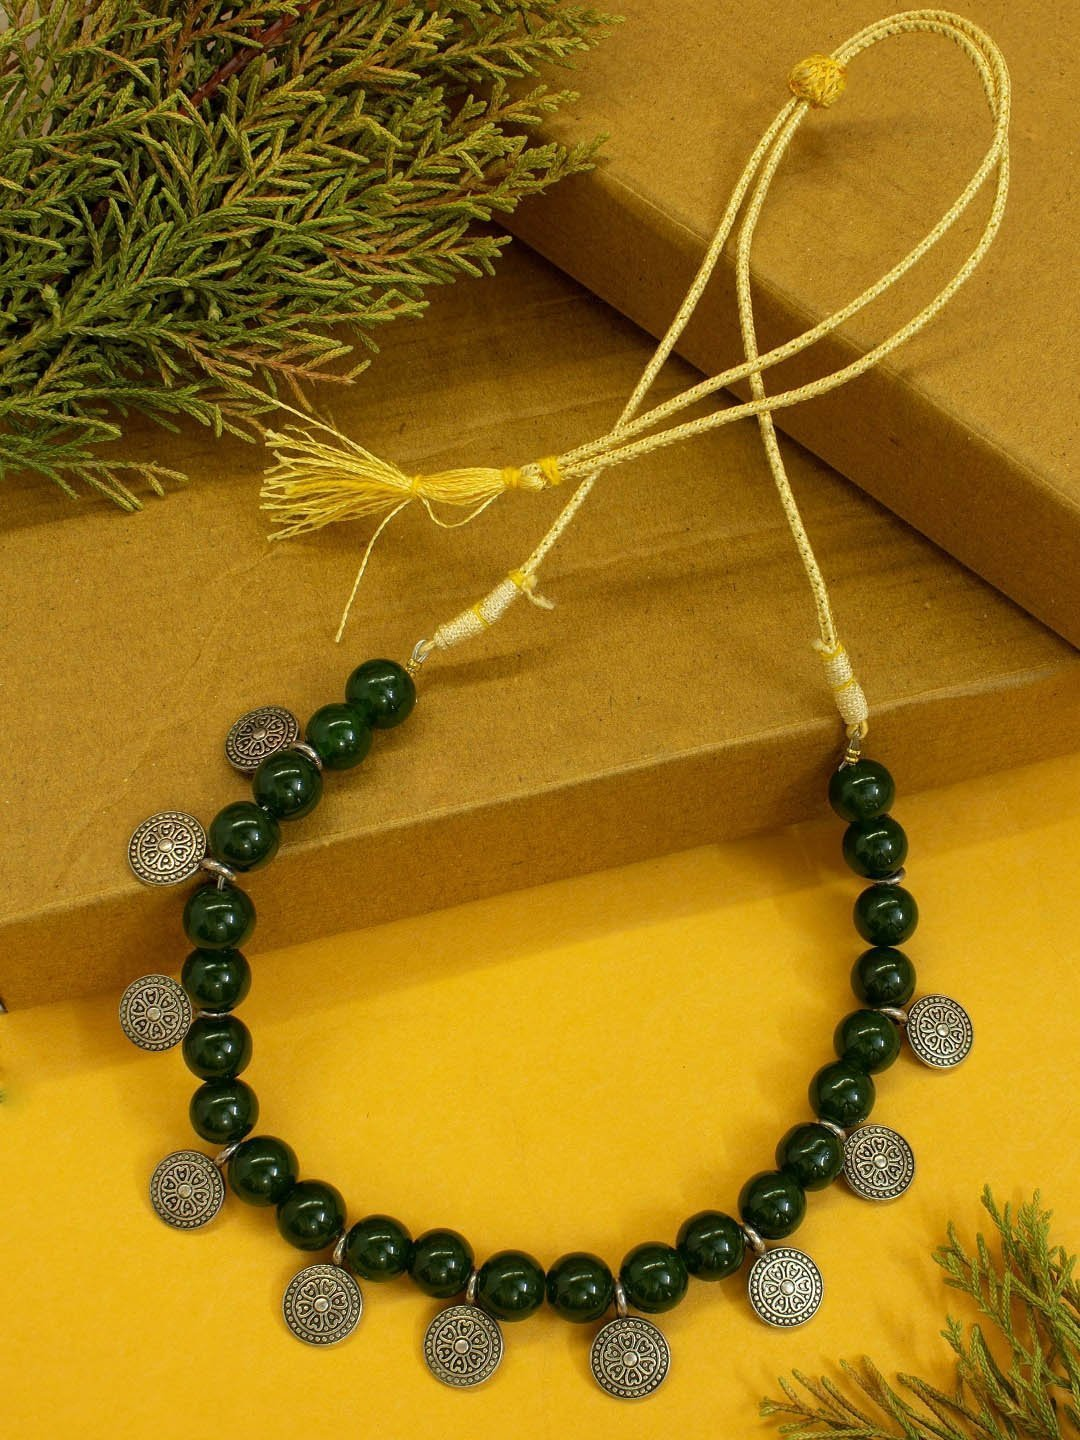 Nishna Designs Silver Plated Floral Design Coins With Green color Agate Beads Choker Necklace-NISHNA DESIGNS-Necklace